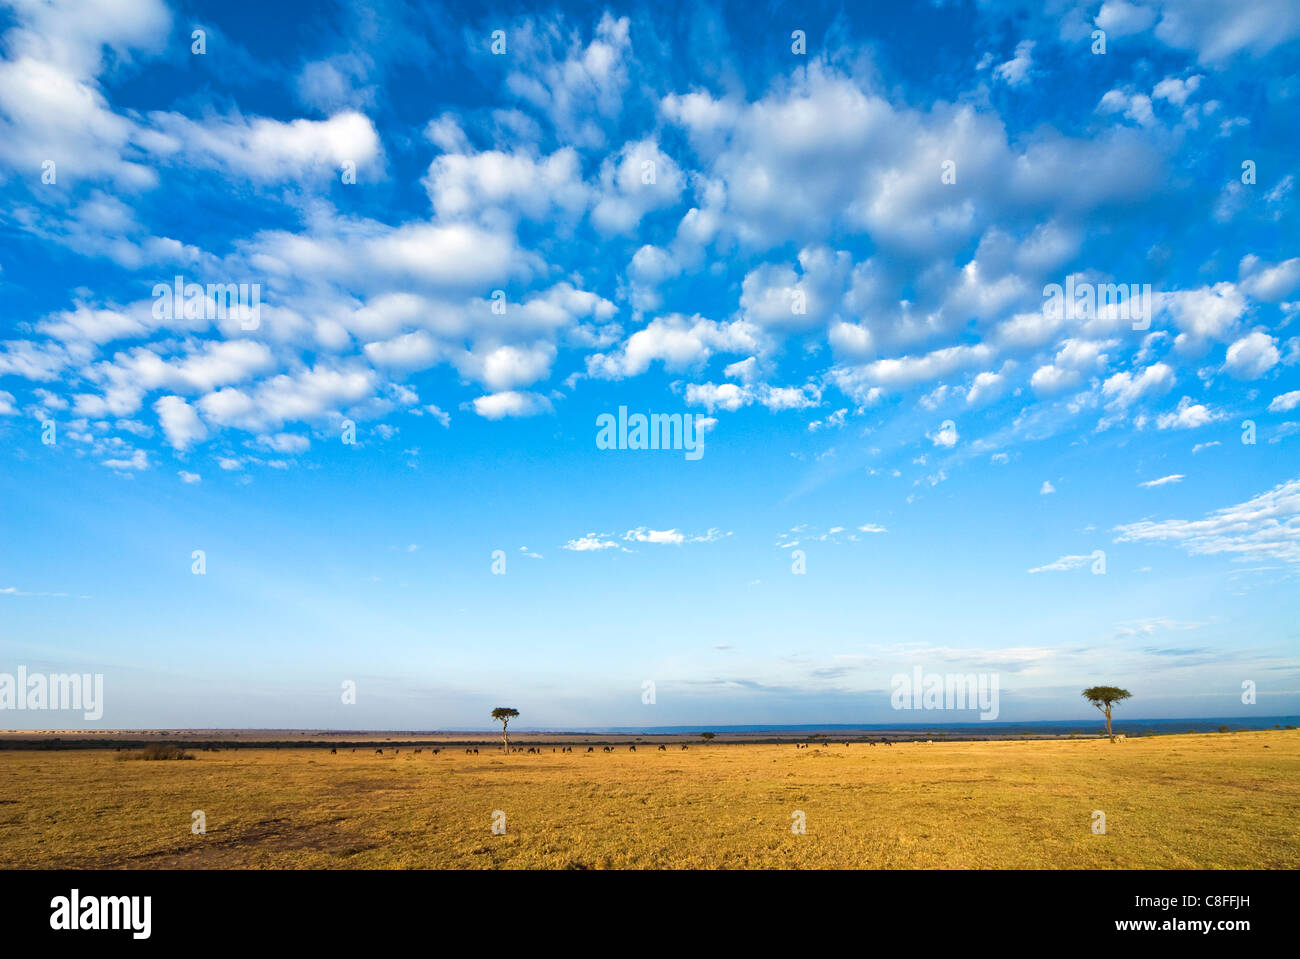 The Bush, Masai Mara National Reserve, Kenya, East Africa - Stock Image